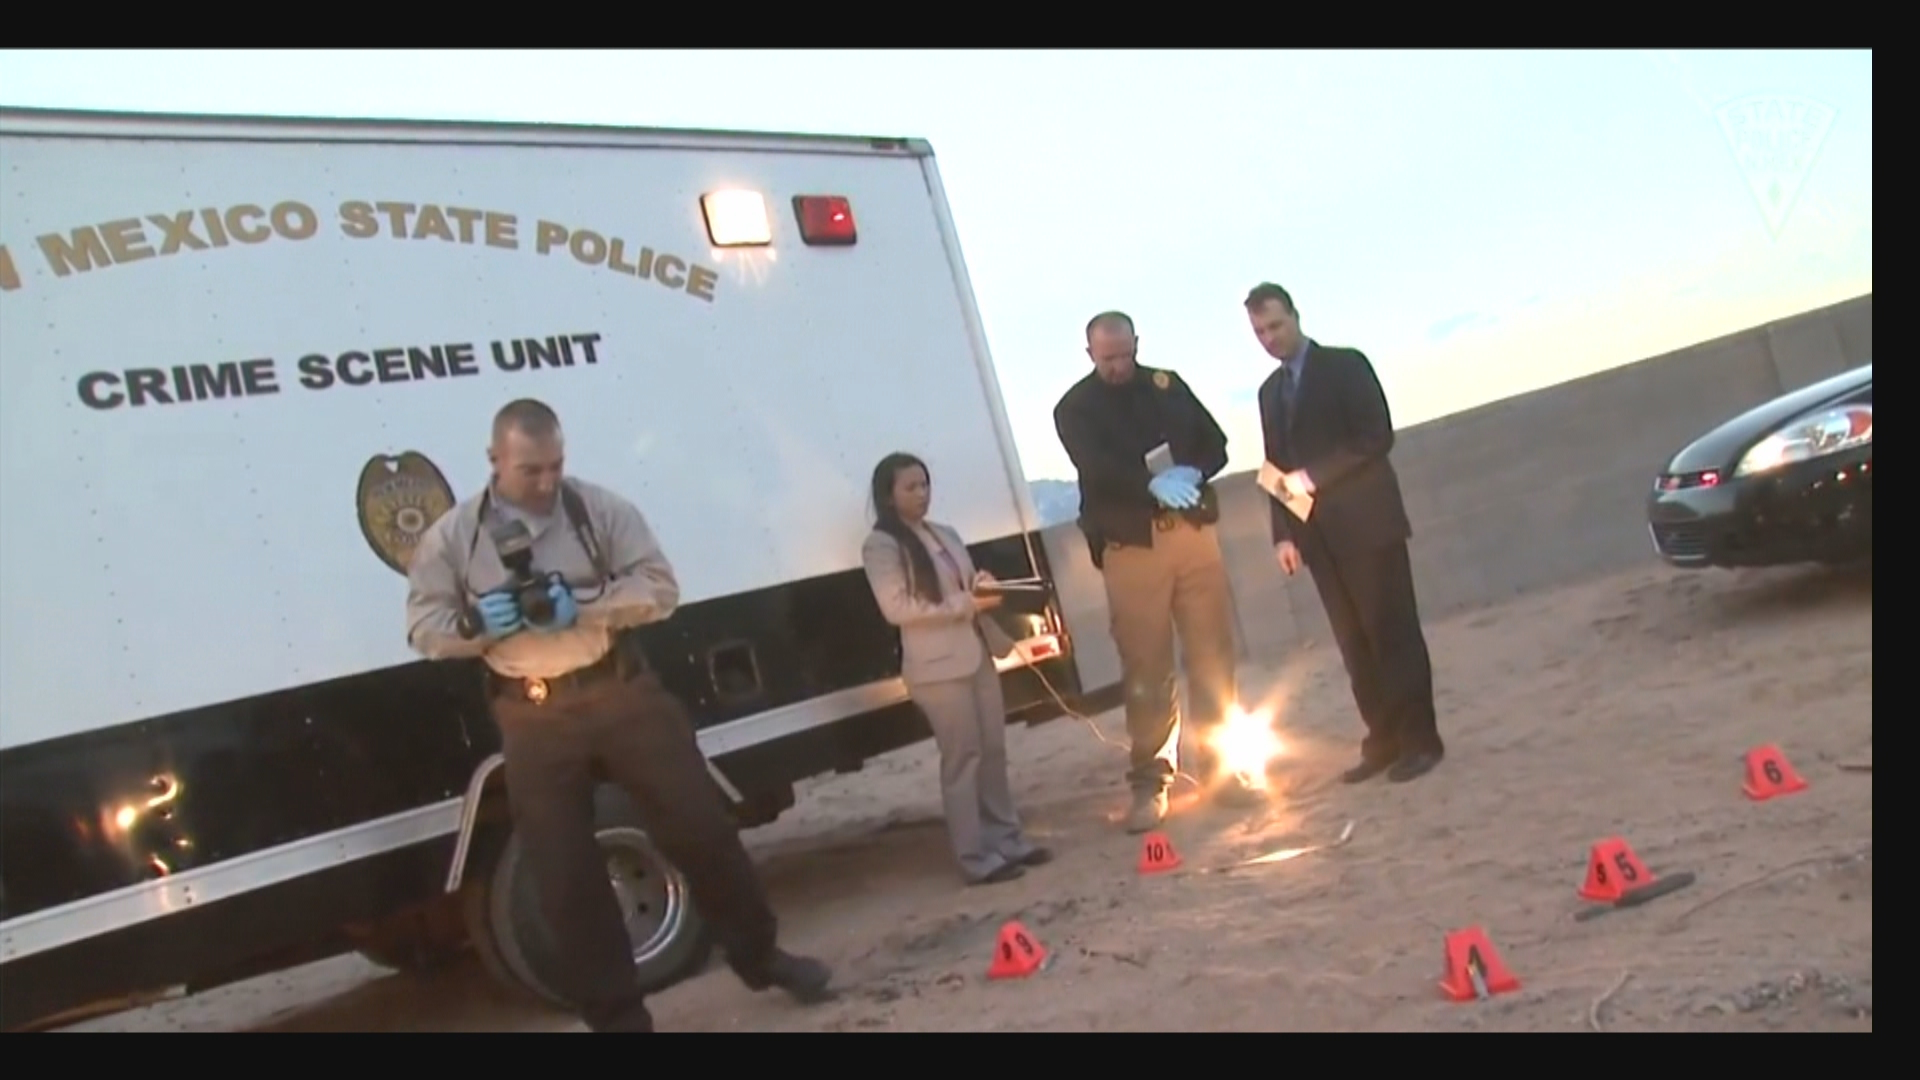 New Mexico State Police recruiting officers